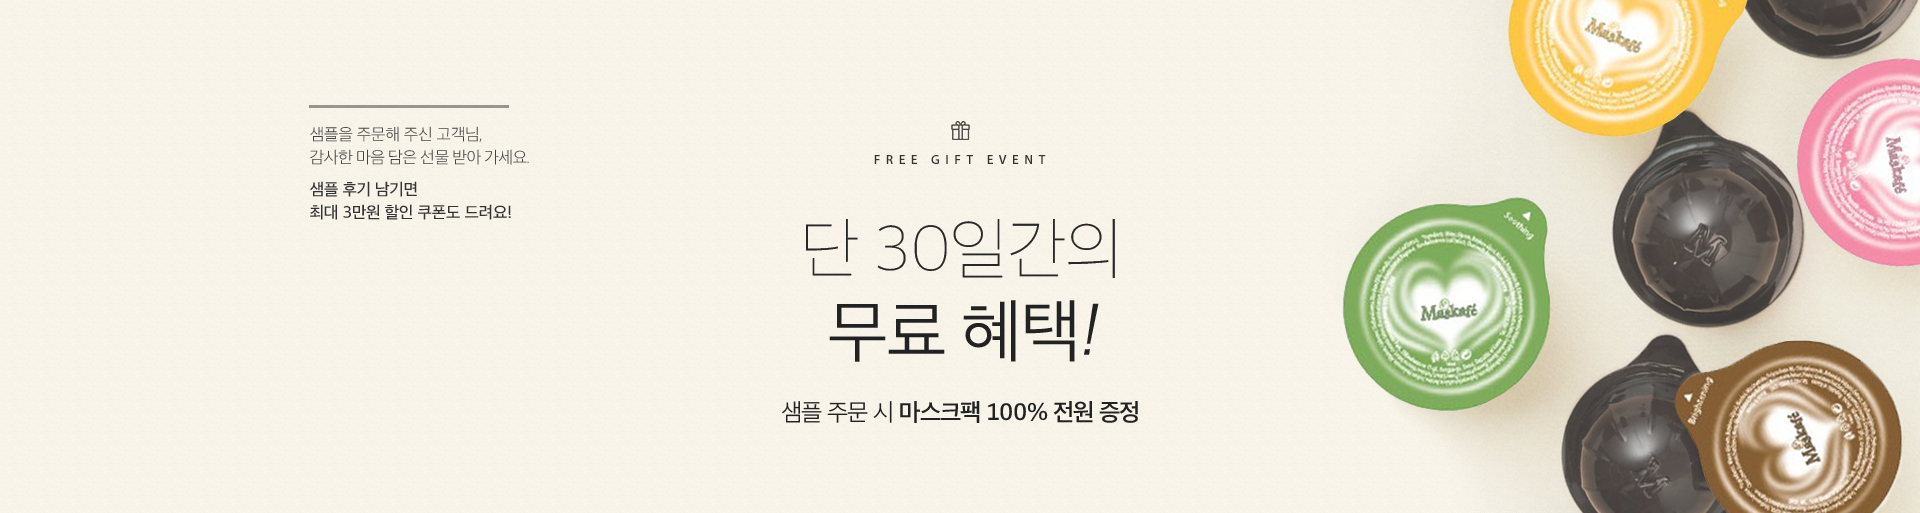 free gift event